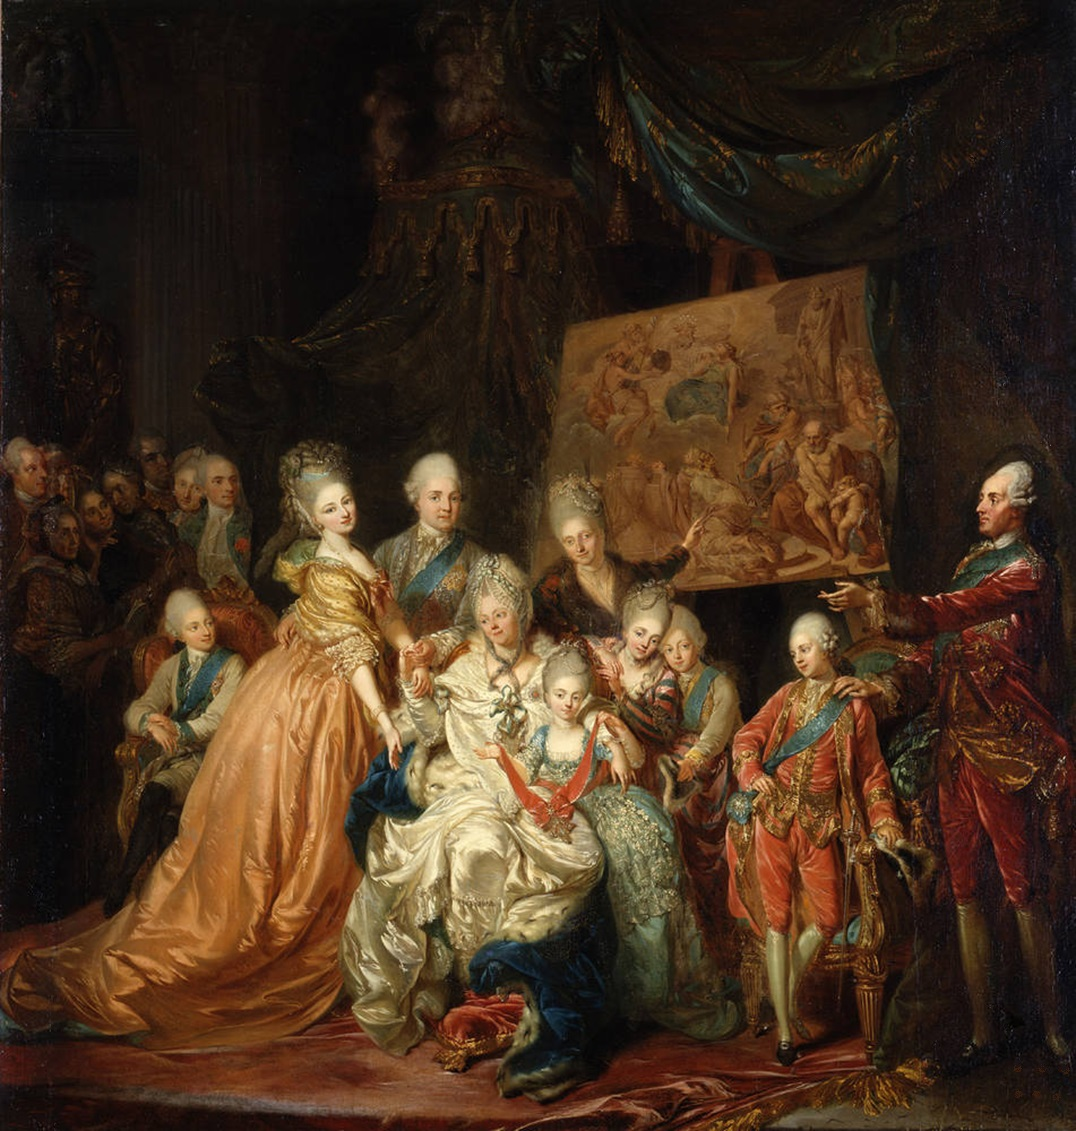 Painting of Maria Antonia and family by Johann Eleazar Zeissig